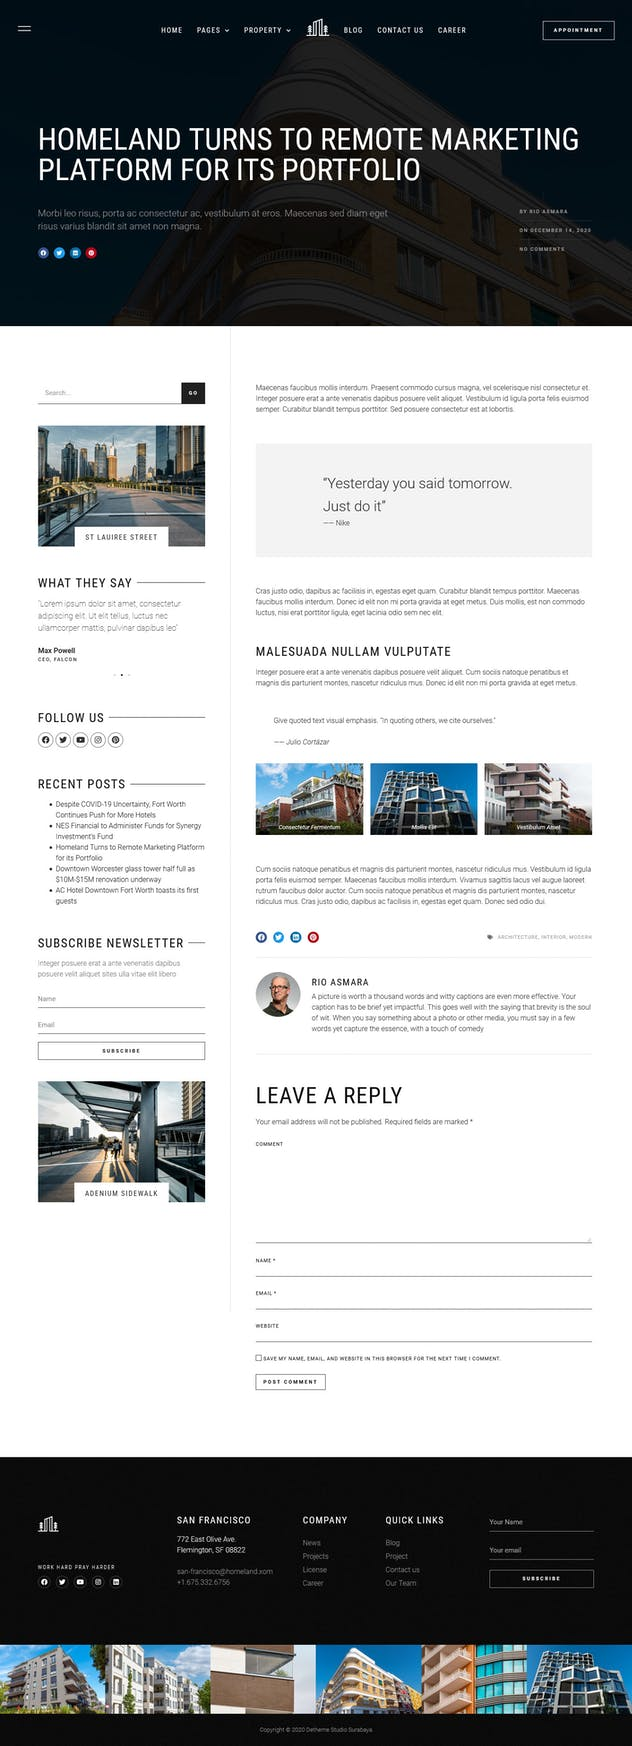 Homeland — Real Estate & Property Elementor Template Kit - product preview 16